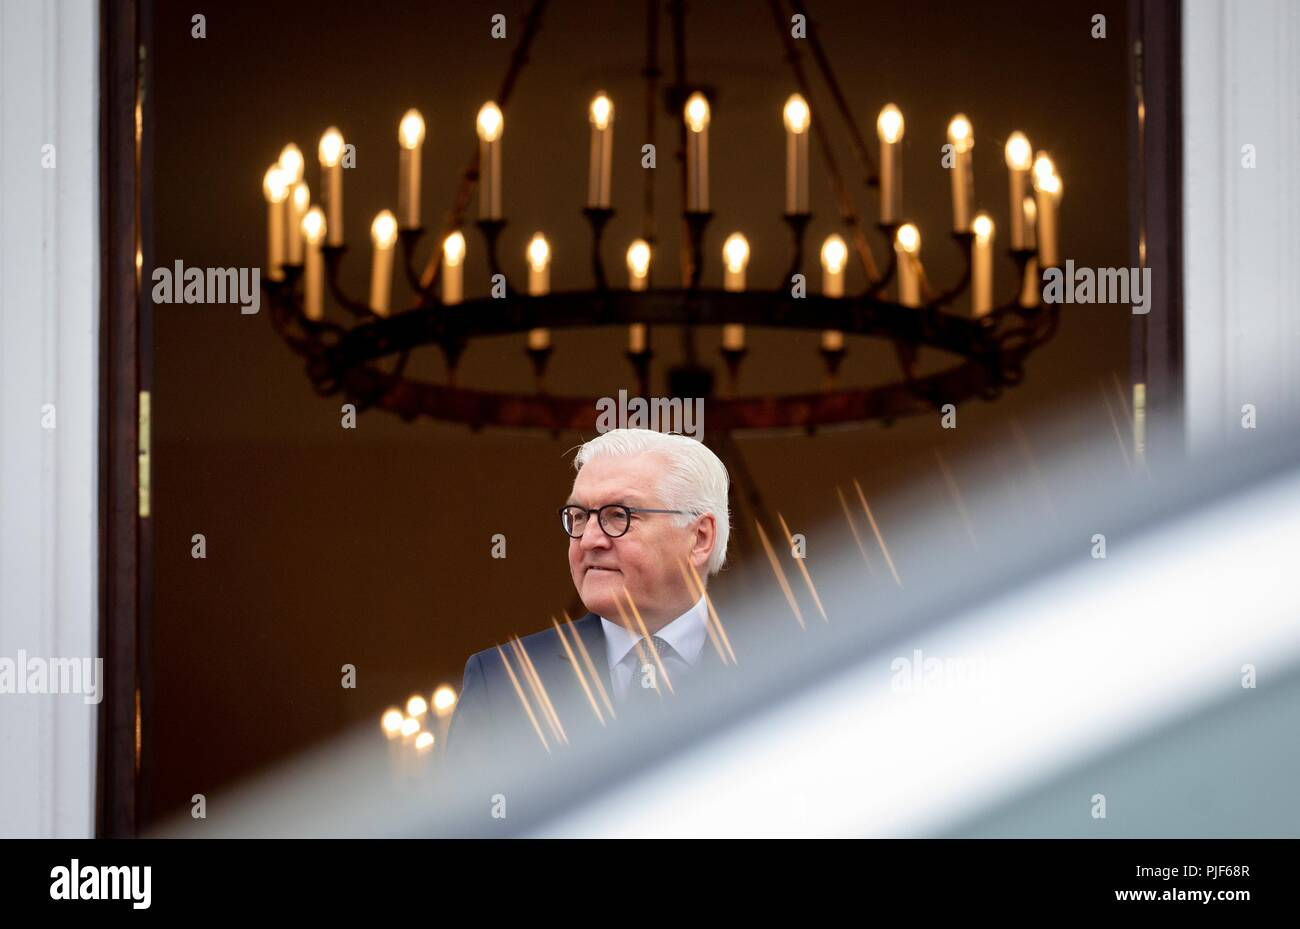 Berlin, Germany. 07th Sep, 2018. 07.09.2018, Berlin: Federal President Frank-Walter Steinmeier is waiting for the Emir of Qatar at the entrance to Schloss Bellevue. Credit: Kay Nietfeld/dpa/Alamy Live News - Stock Image